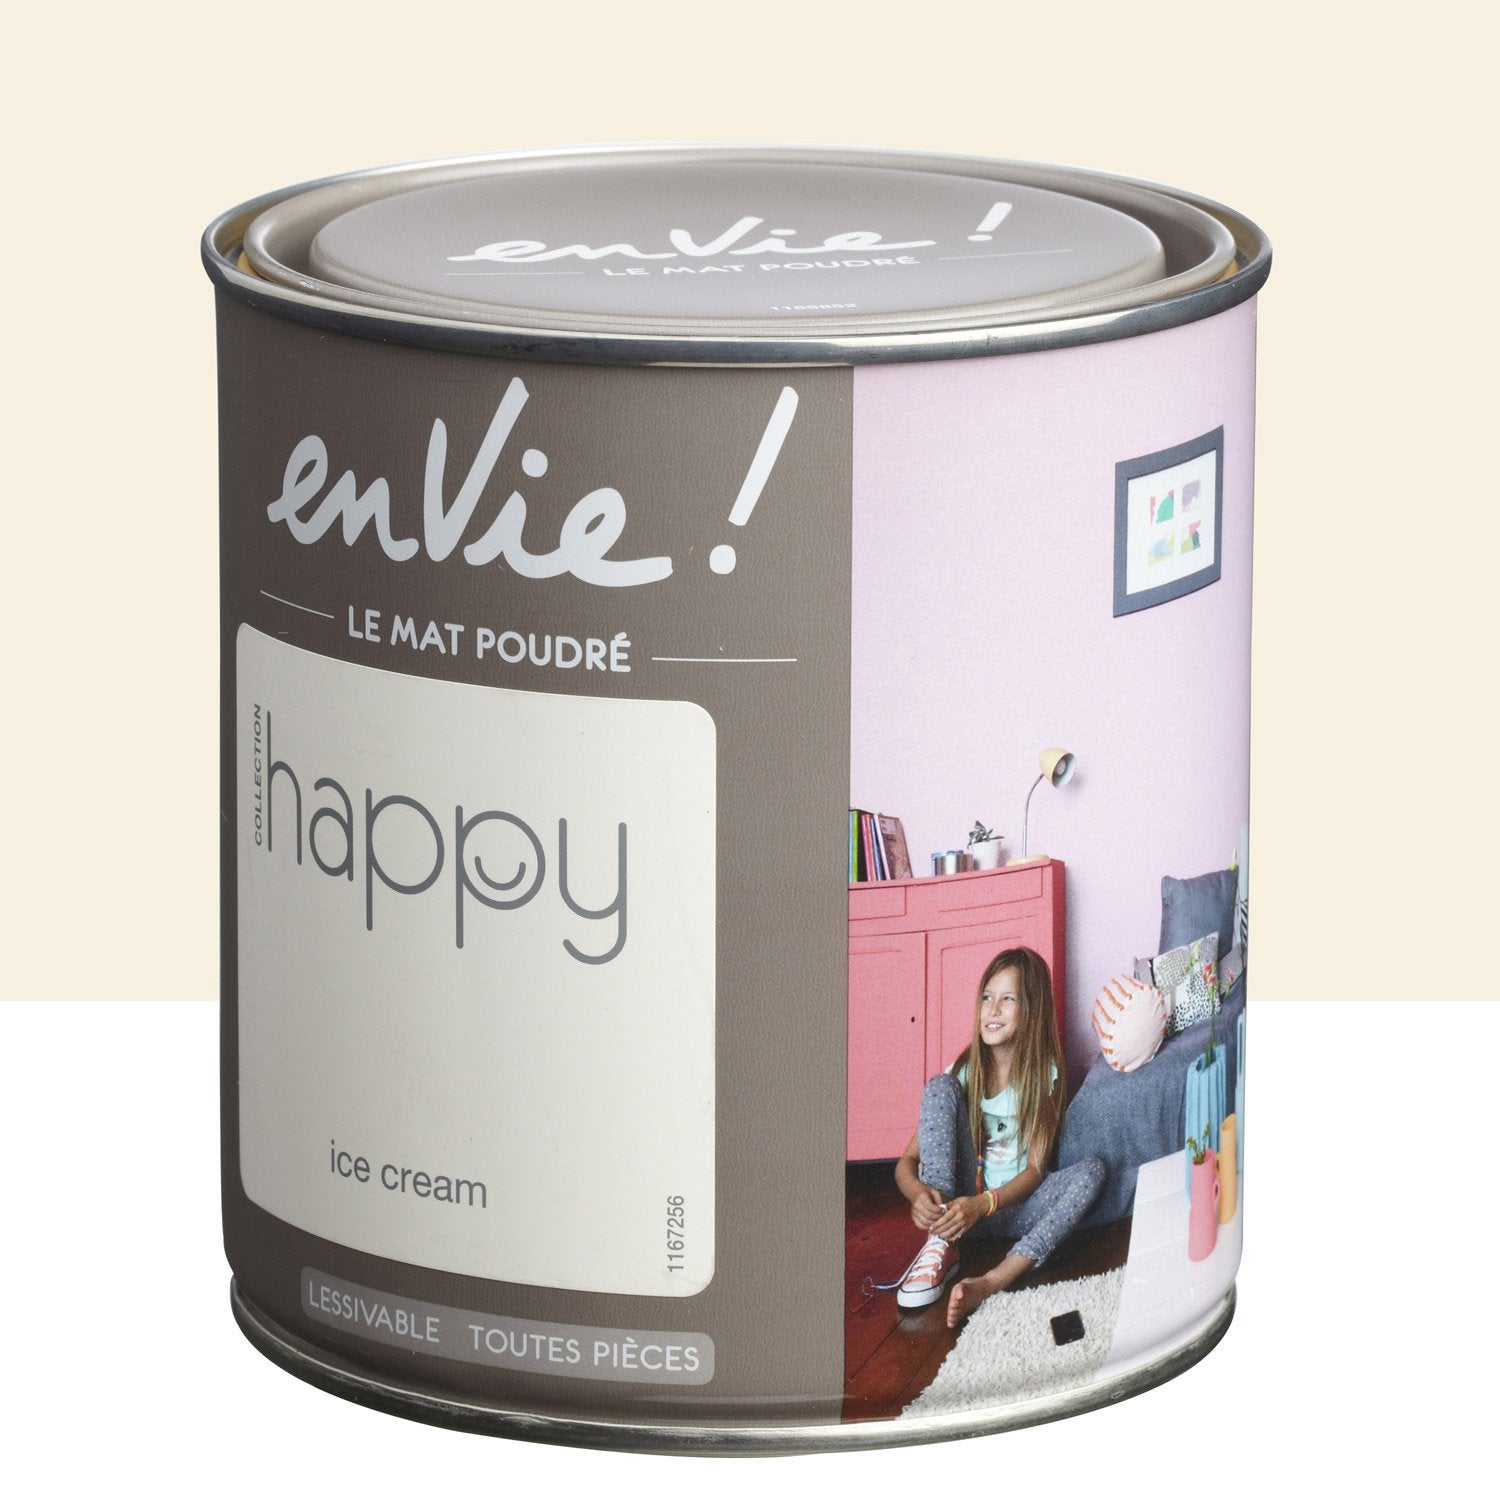 Peinture beige ice cream luxens envie collection happy 0 5 l leroy merlin for Peinture beige leroy merlin